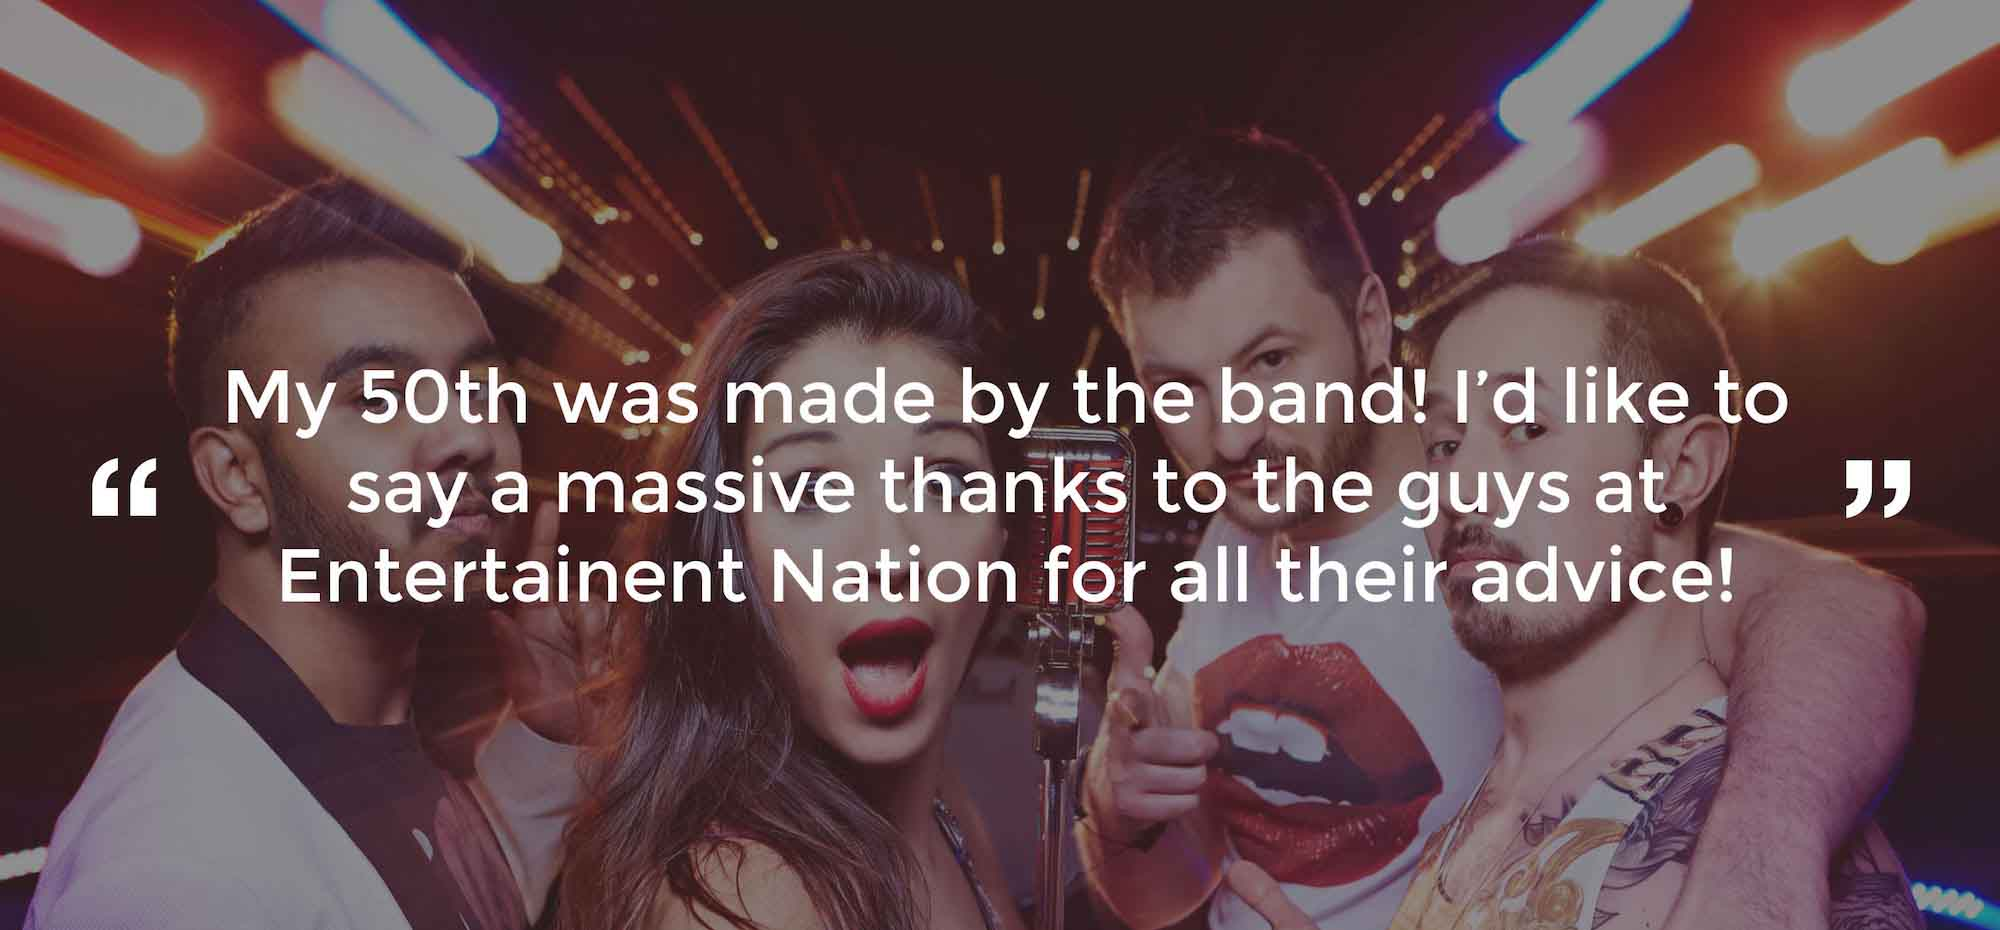 Client Review of a Party Band Shropshire